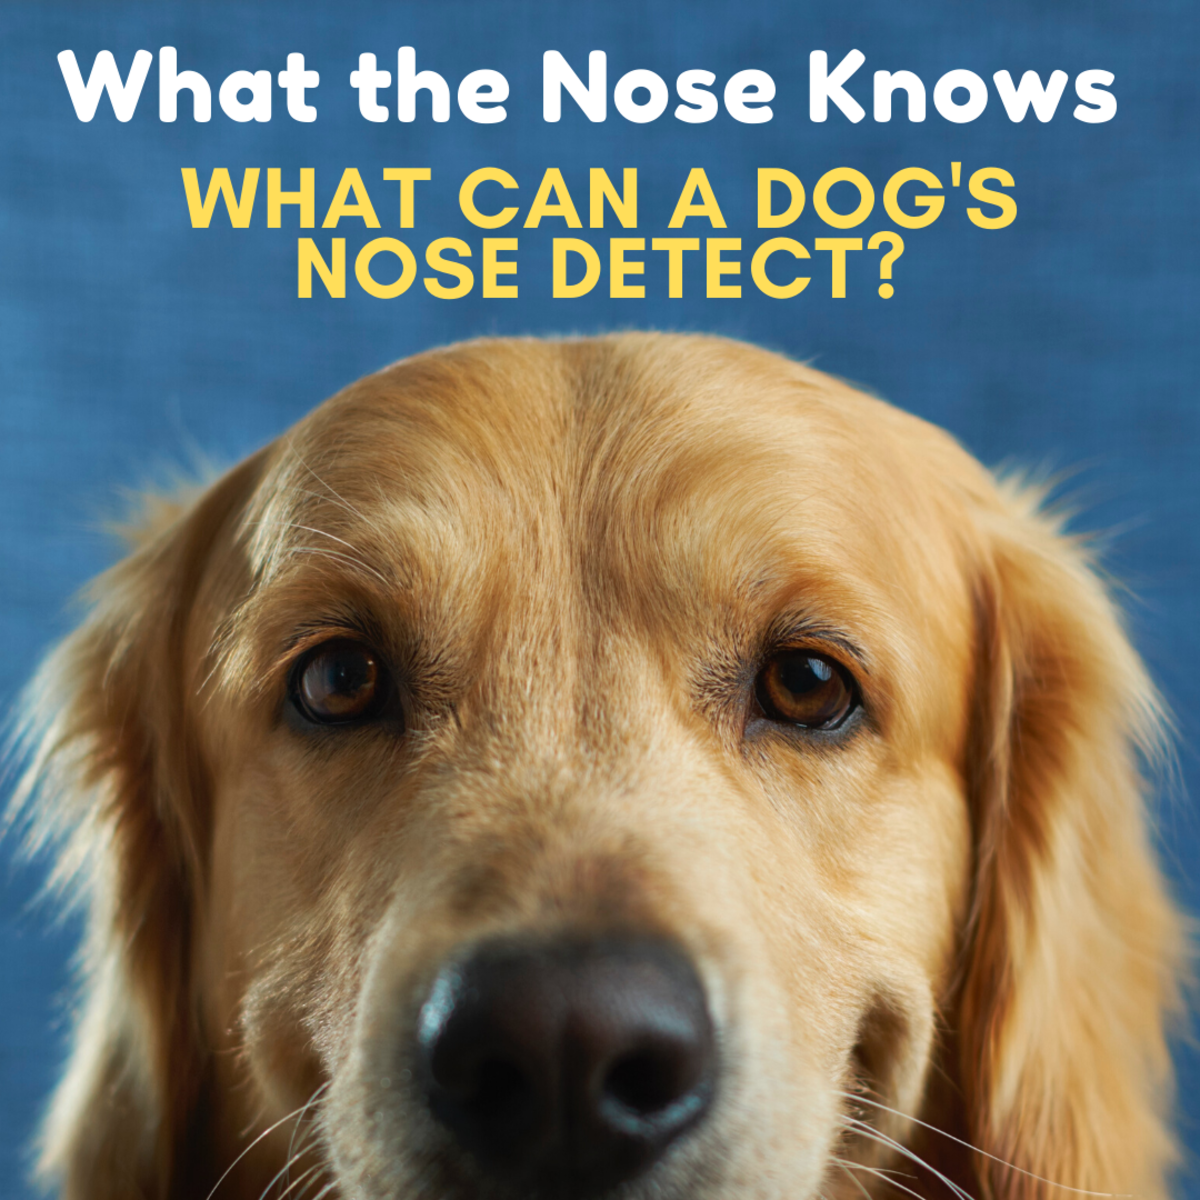 A Dog's Nose Can Detect Disease, Disaster, and Death